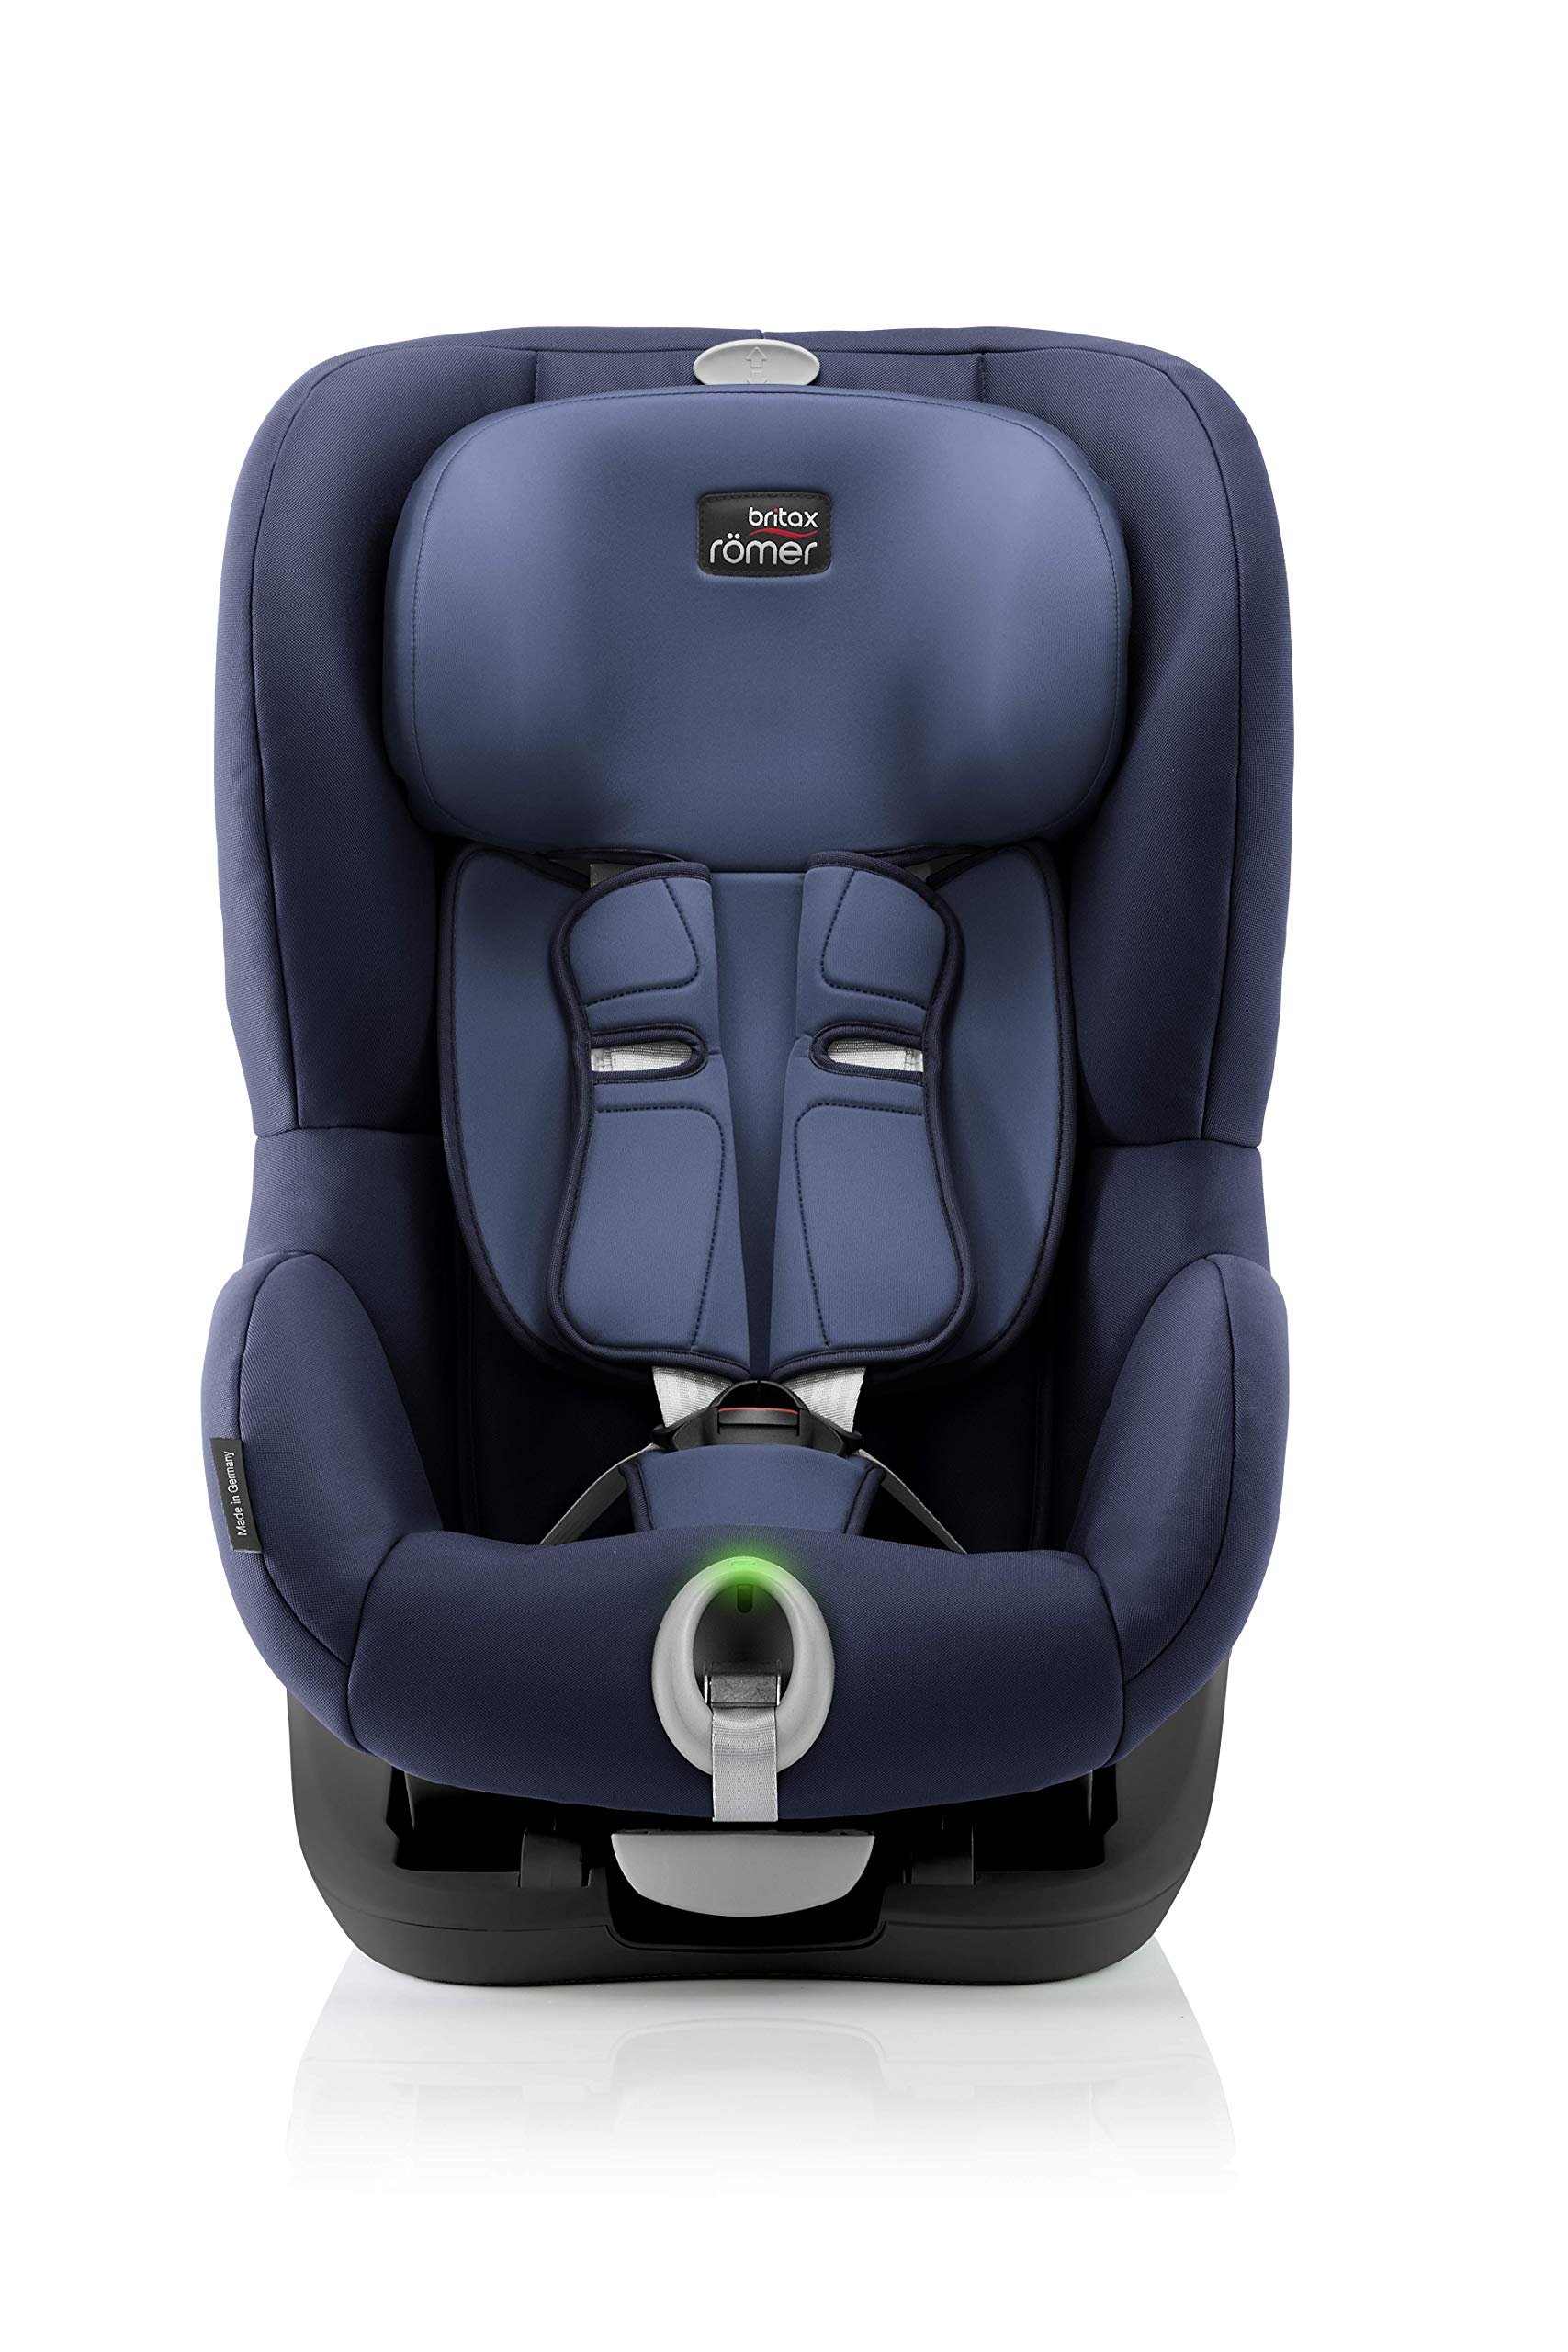 Britax Römer King II LS Group 1 Car Seat Britax Römer Easy installation – with tilting seat and patented seat belt tensioning system Optimum protection – performance chest pads, deep, padded side 5